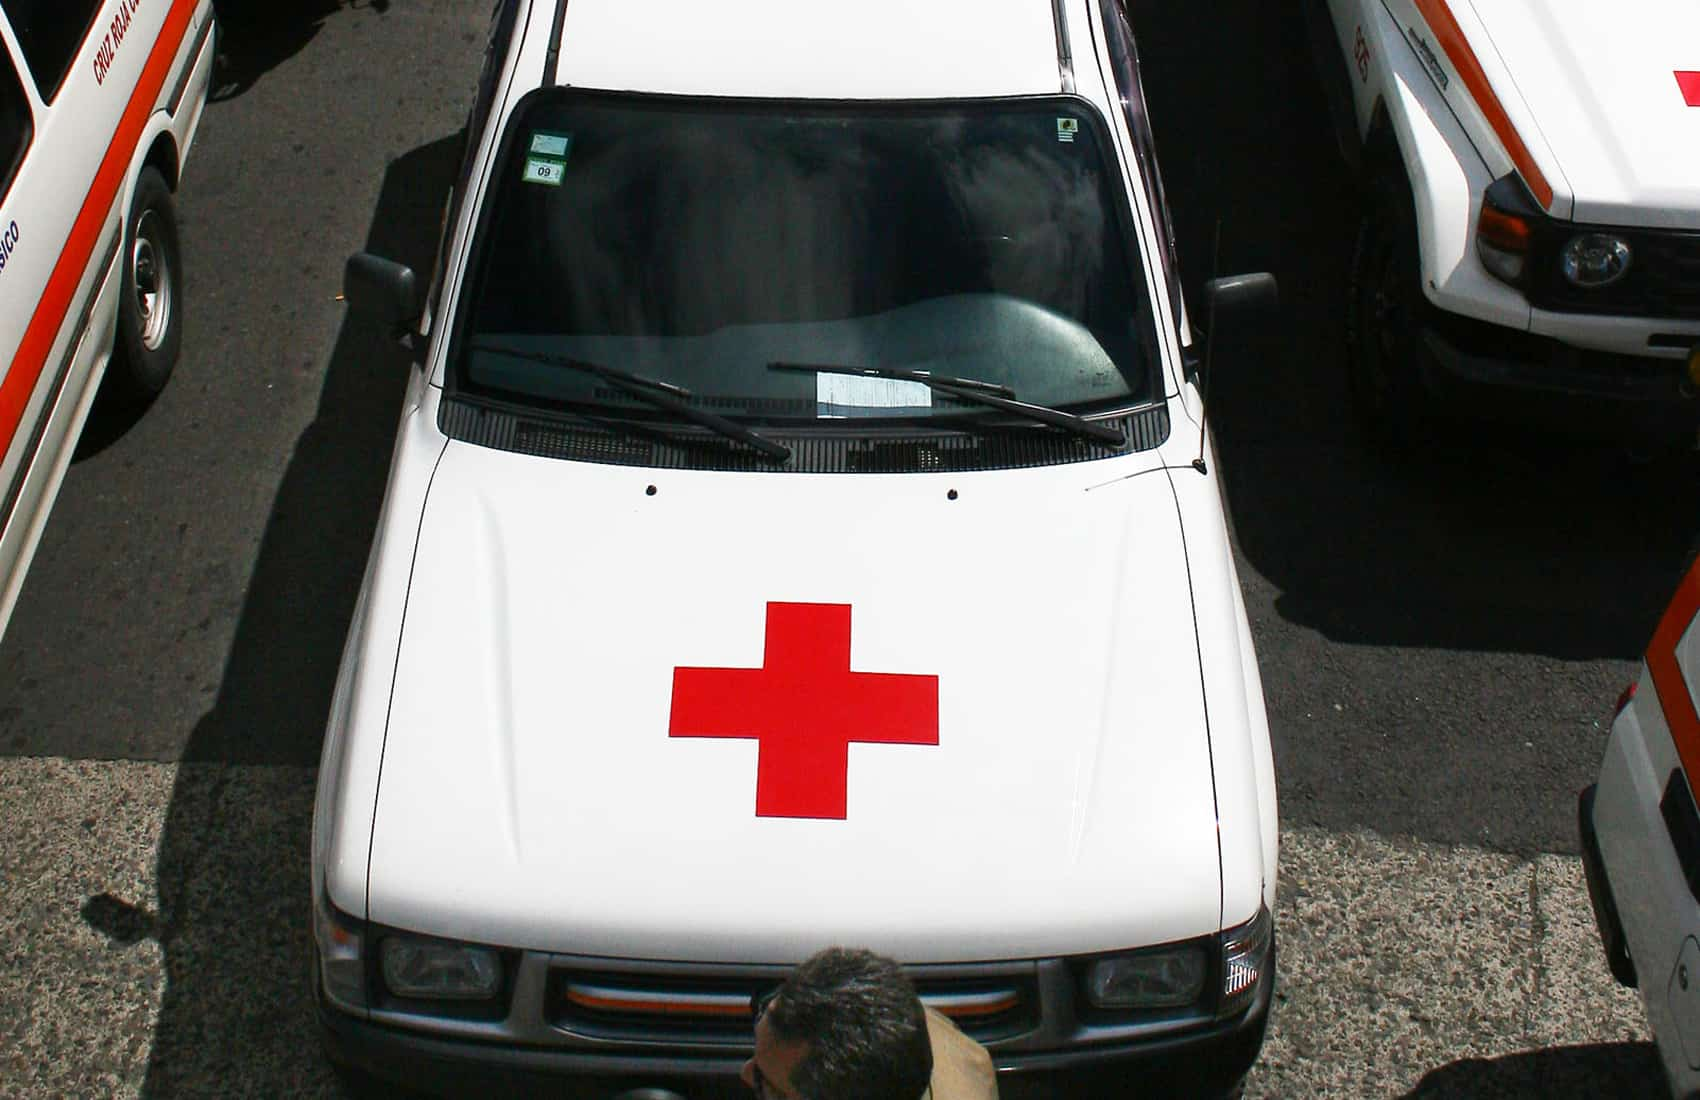 Weird news: A Costa Rica ambulance